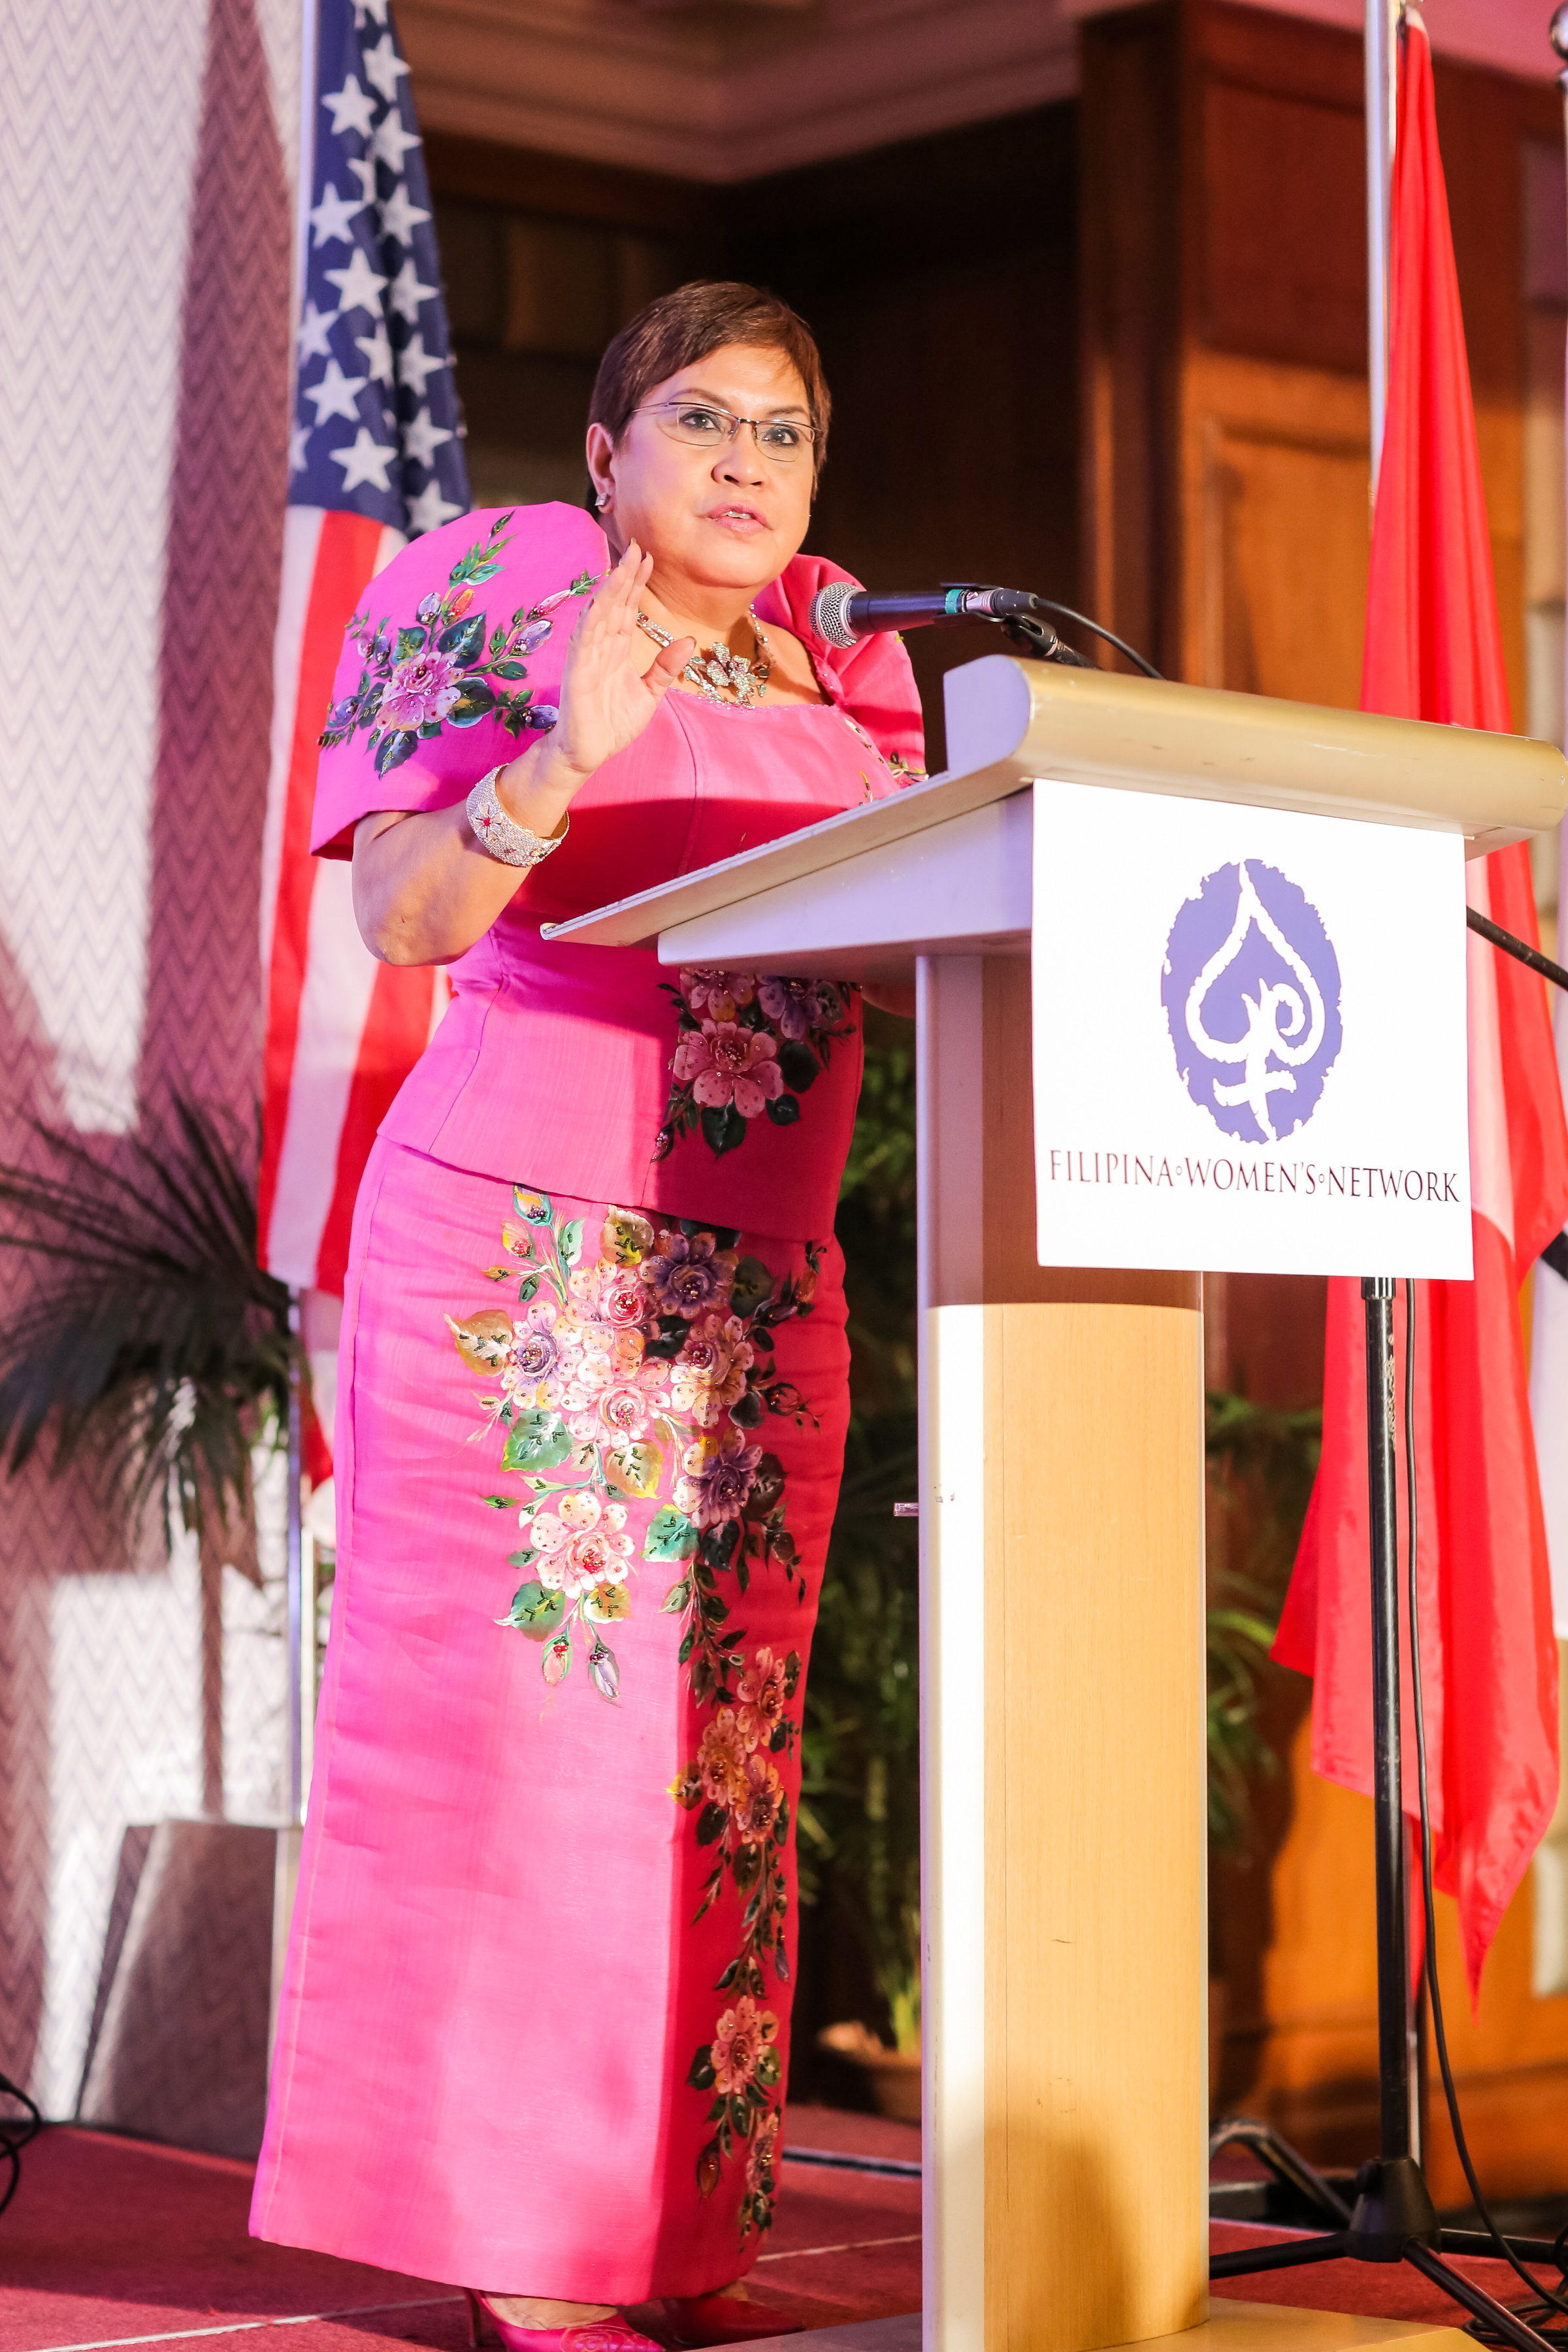 """Lorna Patajo-Kapunan (Global FWN100™ '16),Senior Partner, Kapunan Garcia & Castillo Law Offices delivered her leadership keynote """"The Secrets of Successful Women"""" during the Global FWN100™ 2016 Dinner and Awards Ceremony on August 23, 2016 at Shangri-La Mactan in Cebu, Philippines"""